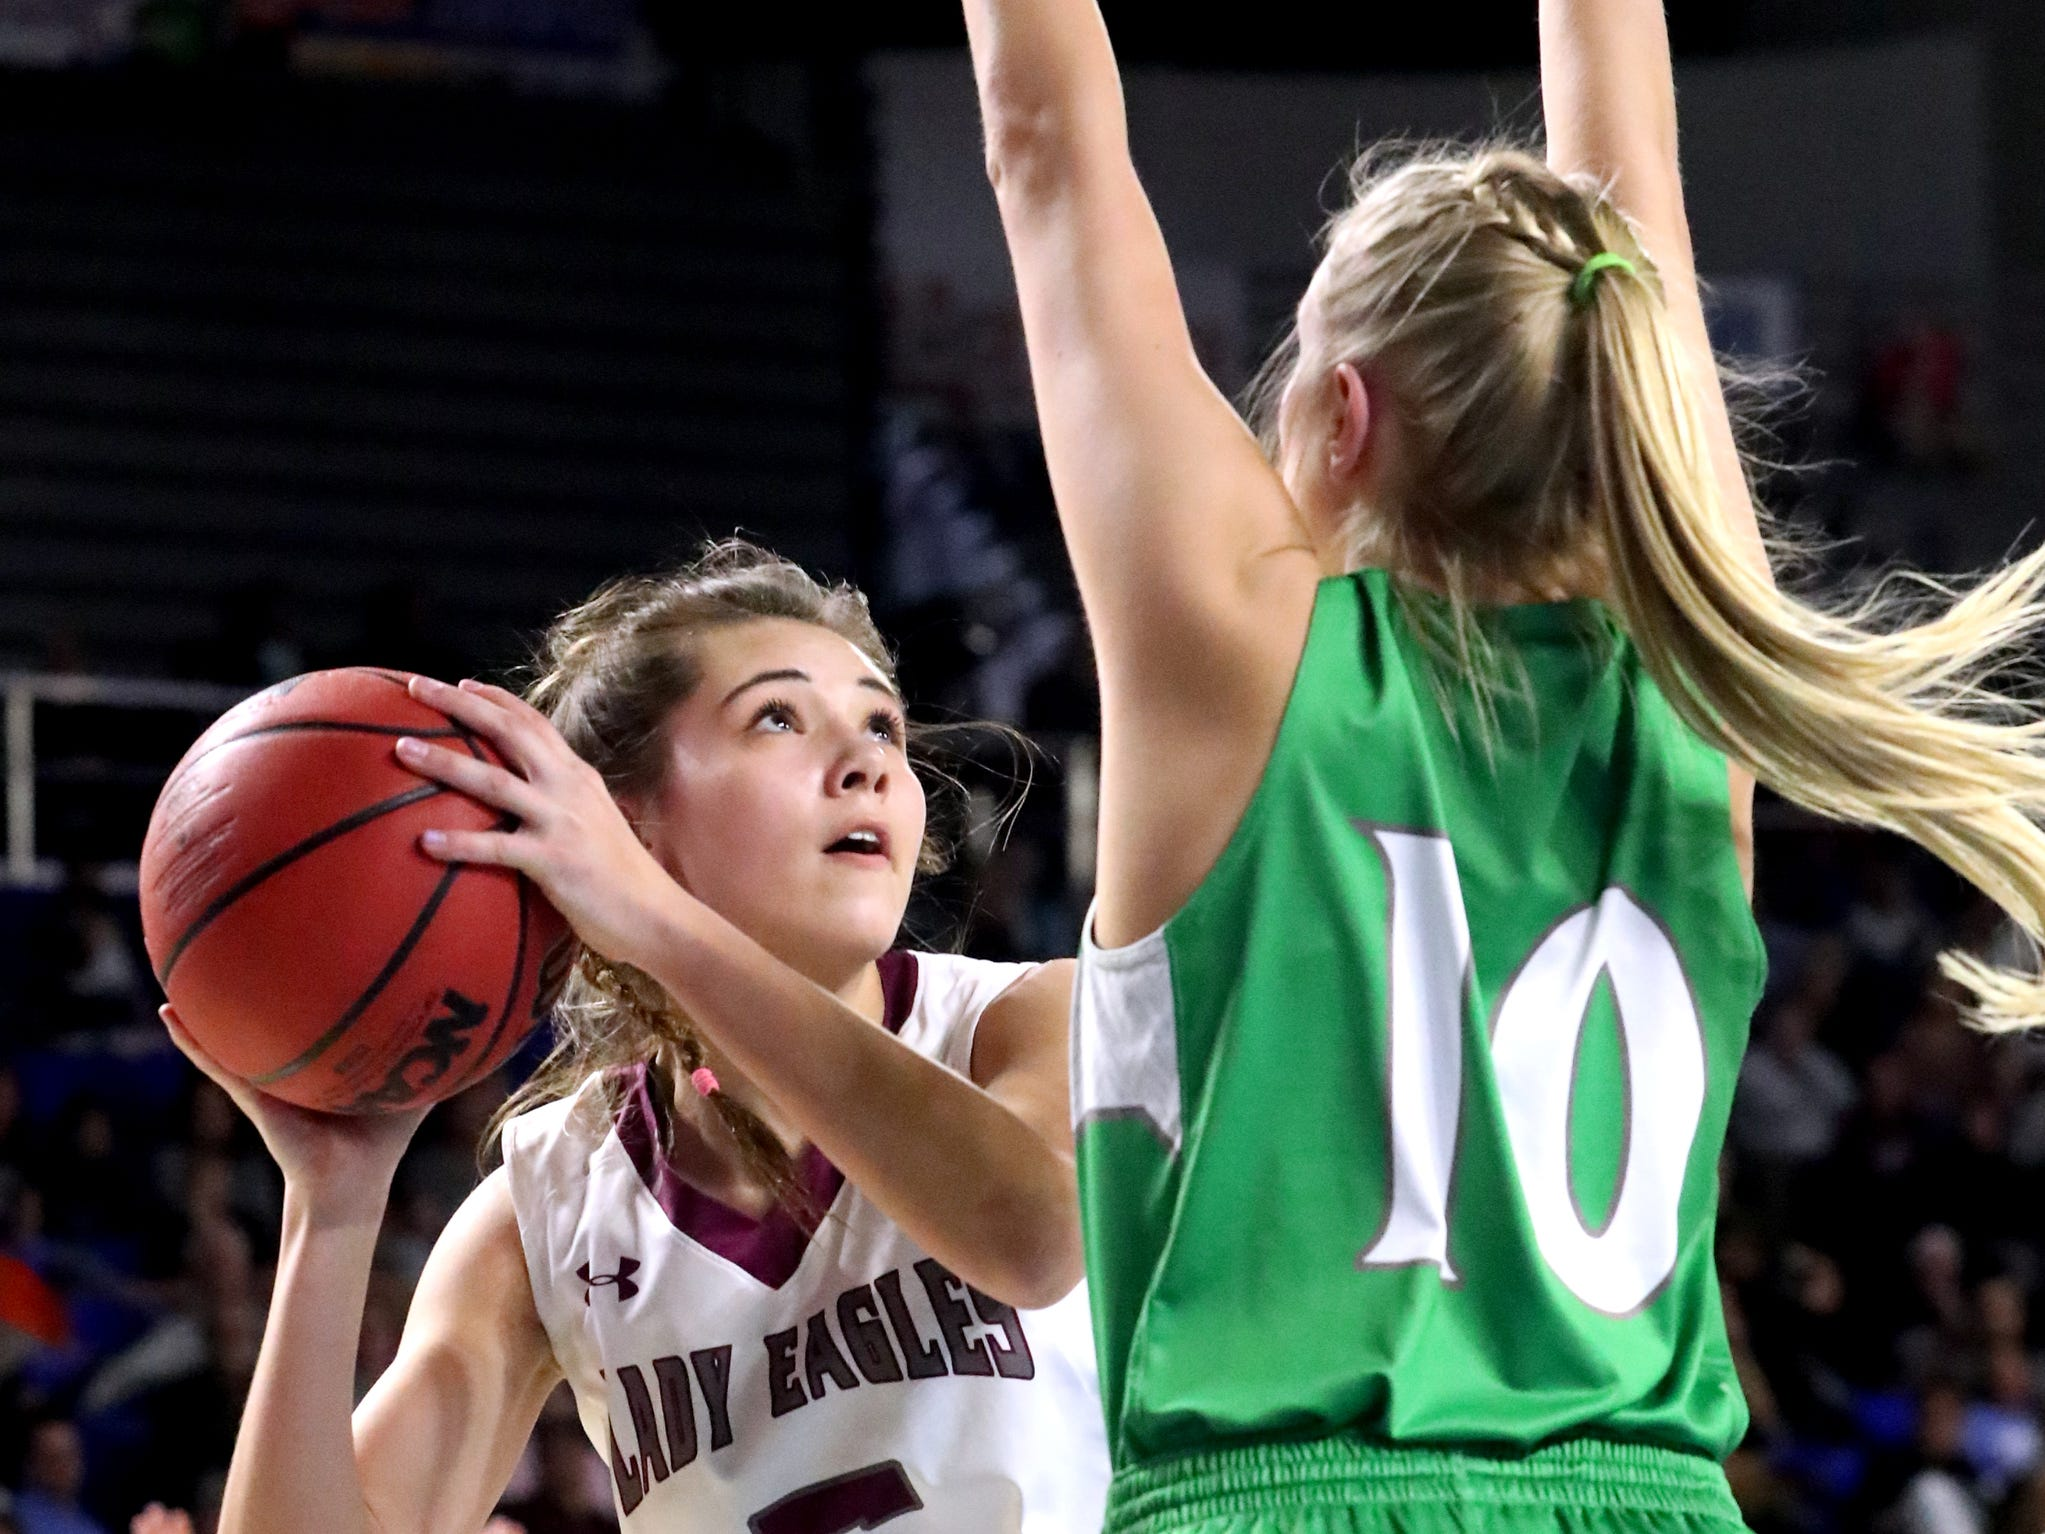 Eagleville's Elizabeth Thompson (5) shoots the bal a Midway's Heaven Prinzi (10) guards her during the quarterfinal round of the TSSAA Div. 1 Class A Girls State Tournament, on Thursday, March 7, 2019, at Murphy Center in Murfreesboro, Tenn.